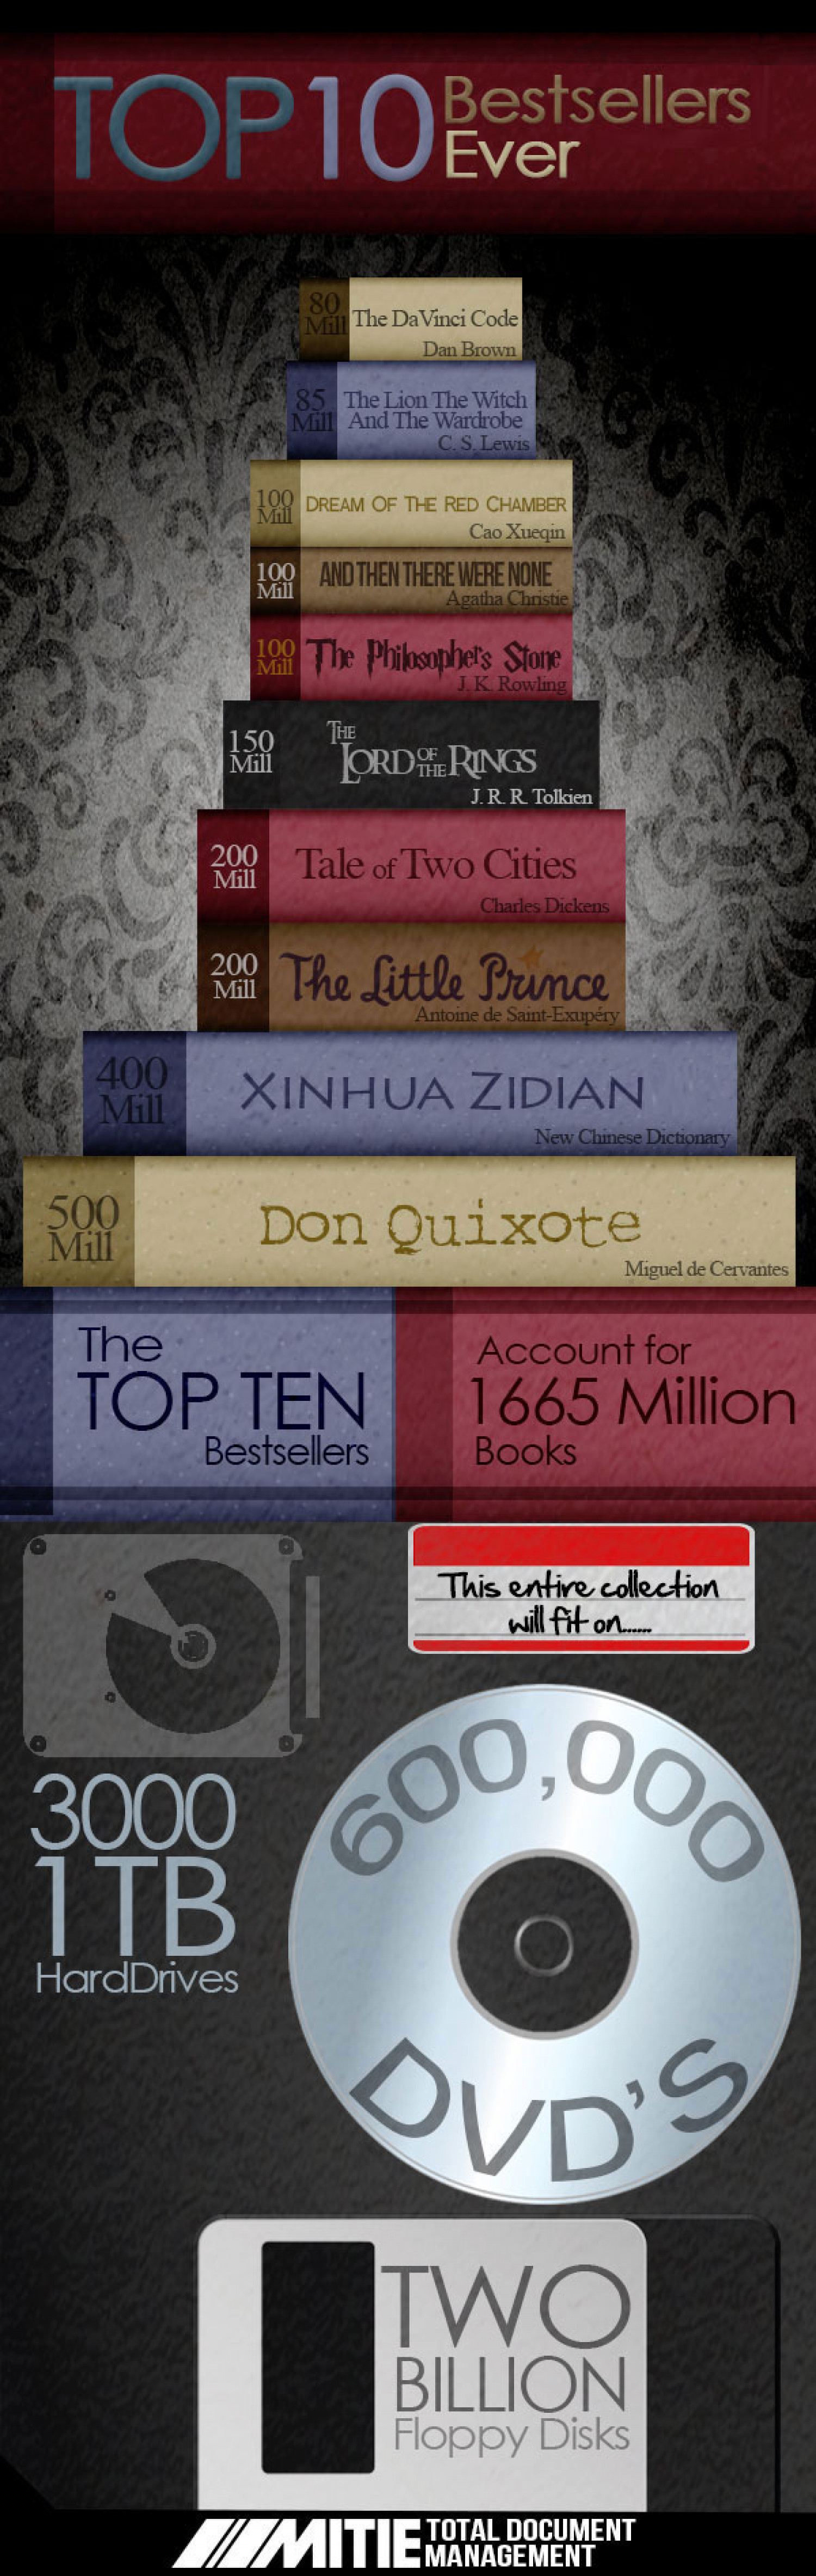 The Top Ten Bestsellers Ever Infographic